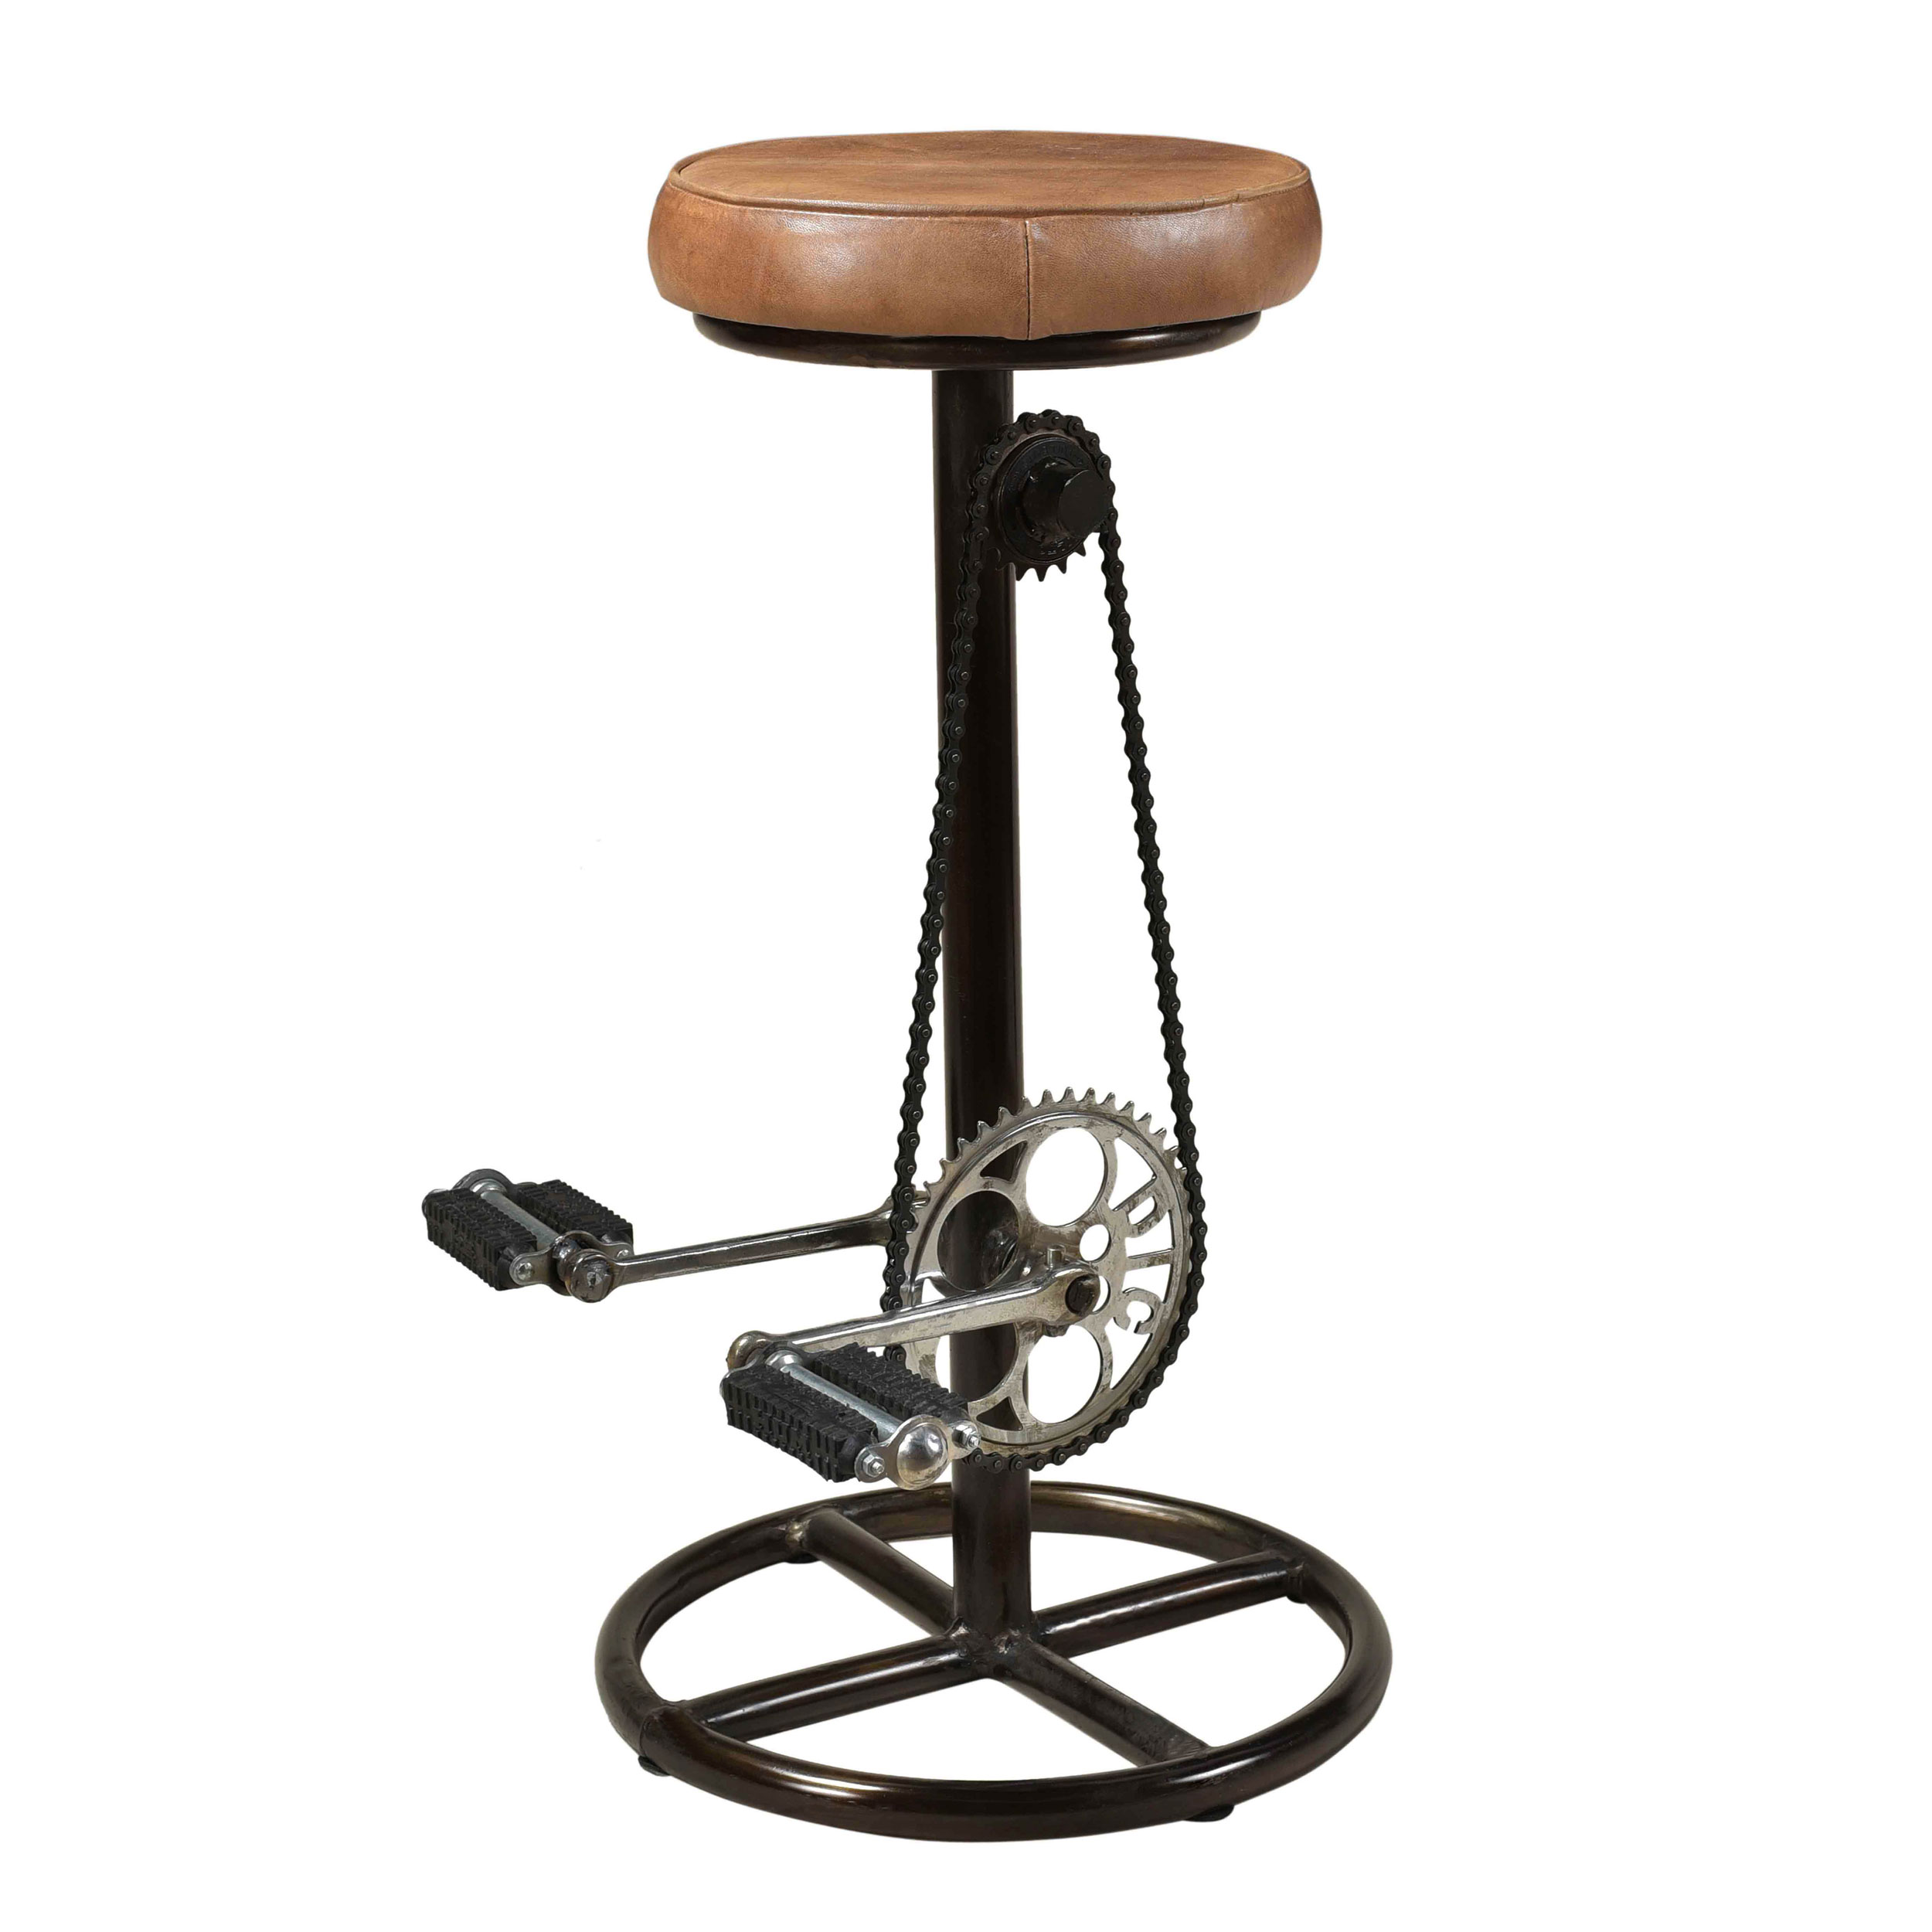 Tabouret de bar 73 cm en cuir marron